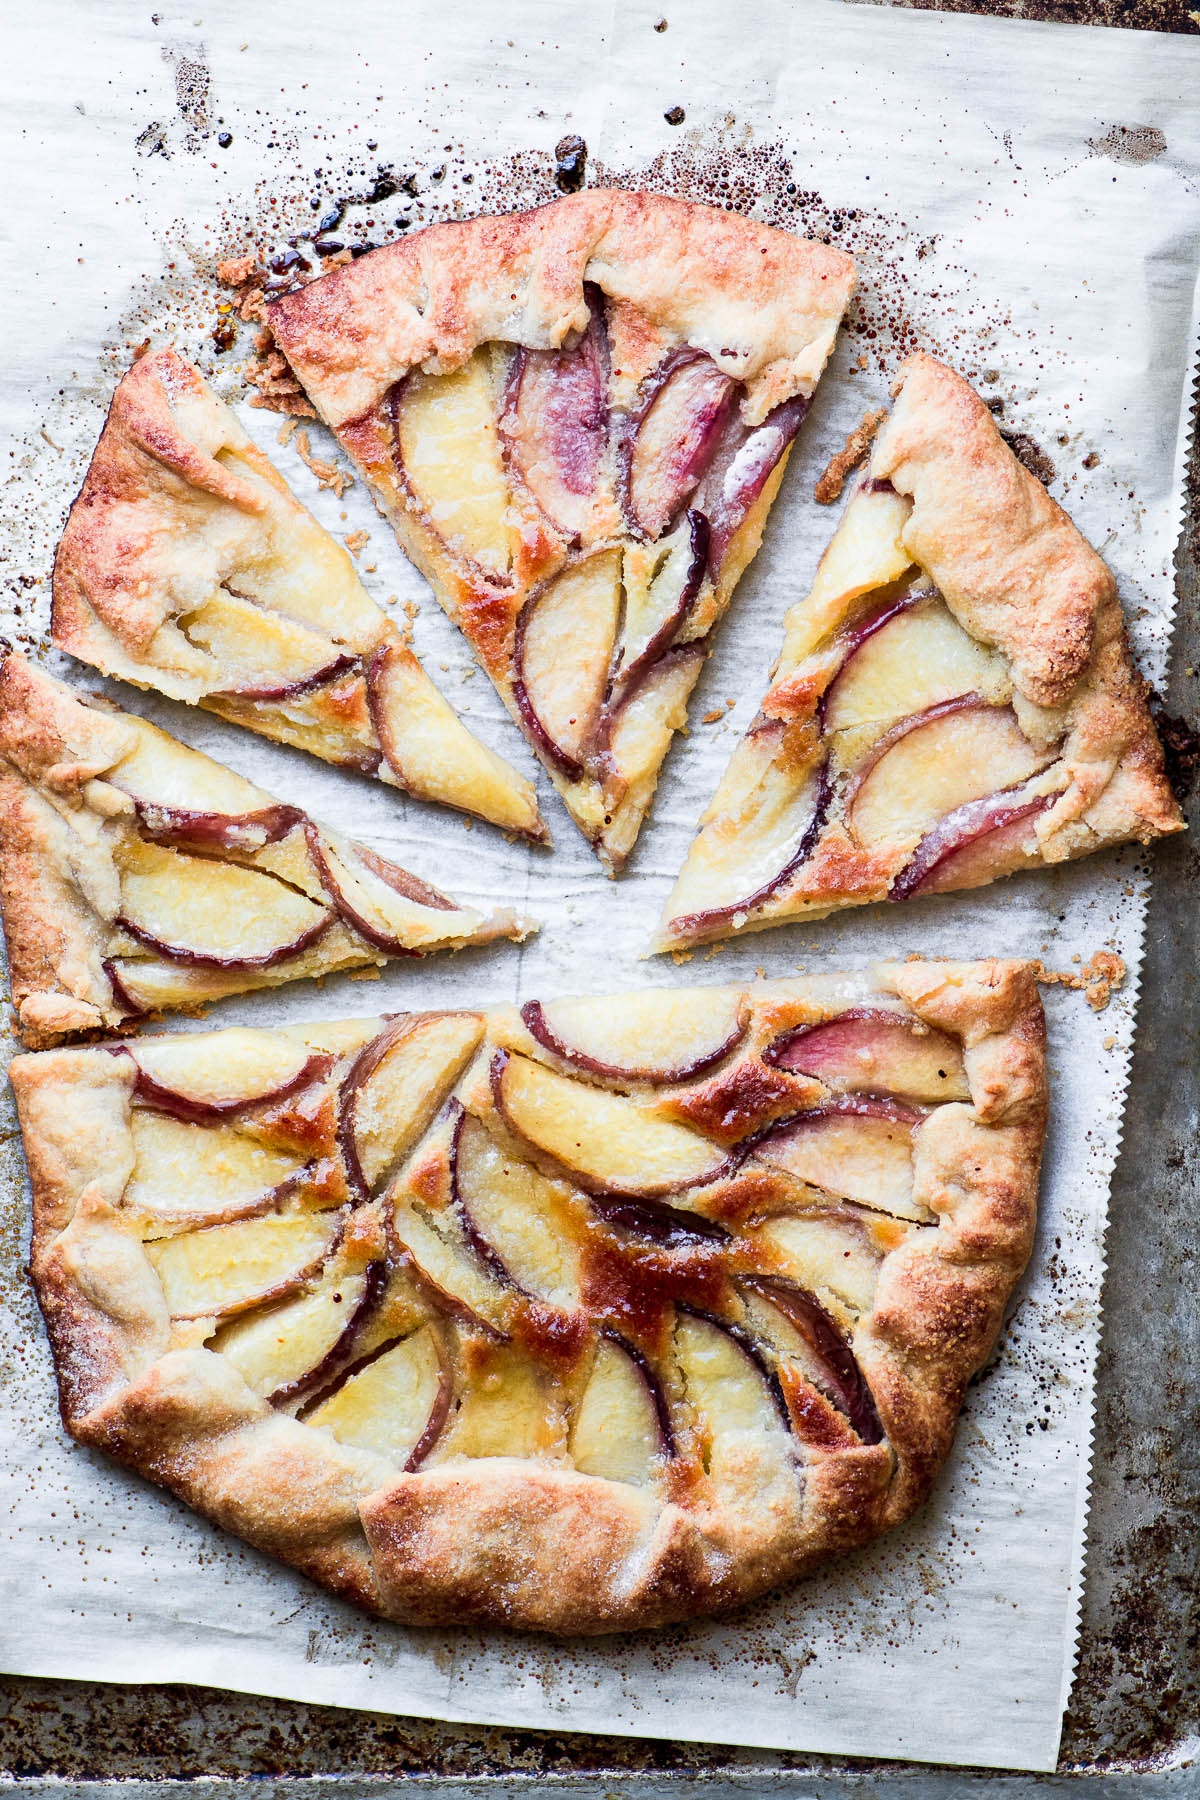 Partially sliced white peach frangipane galette on a baking sheet